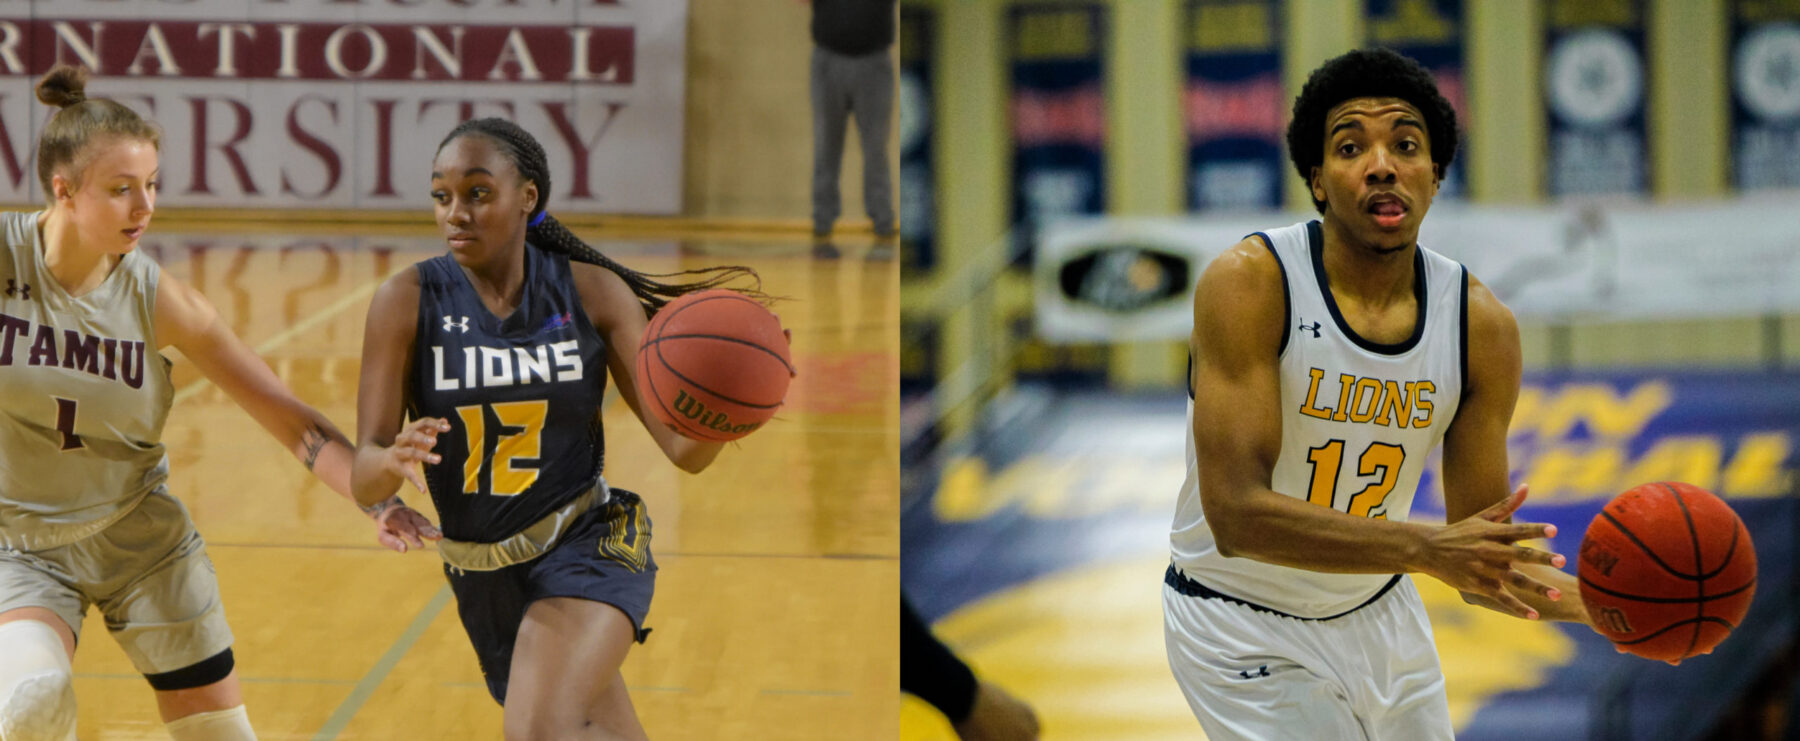 Two images, one is a male dribbling a basket ball. The other is a female dribbling a basket ball.